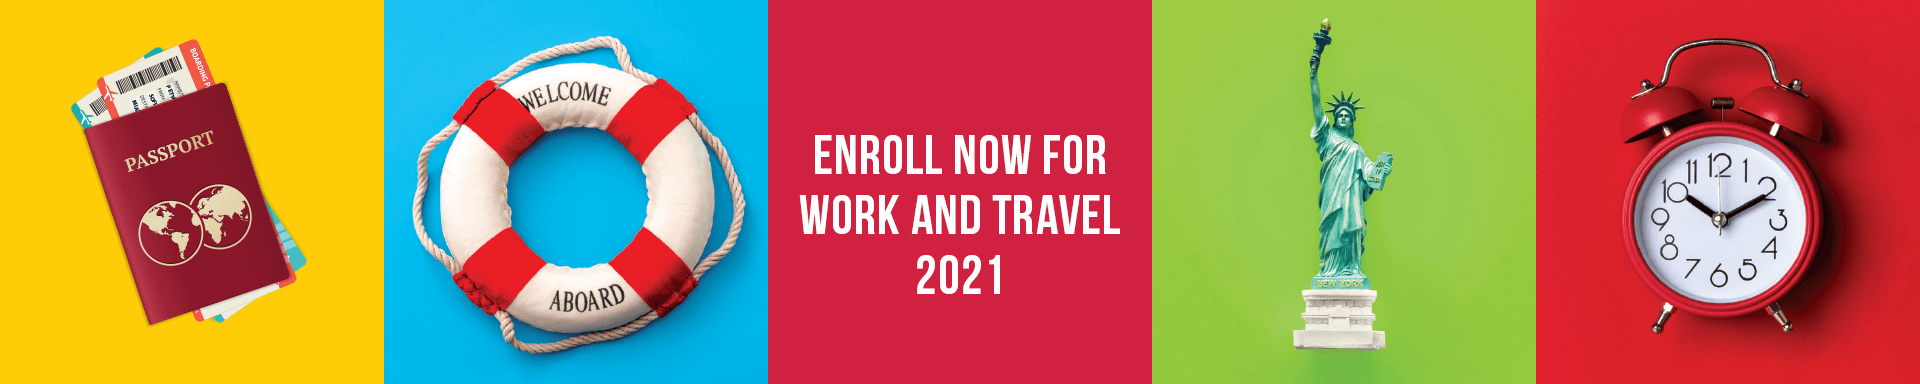 Enroll now for Work and Travel USA 2021 with Usit Colours